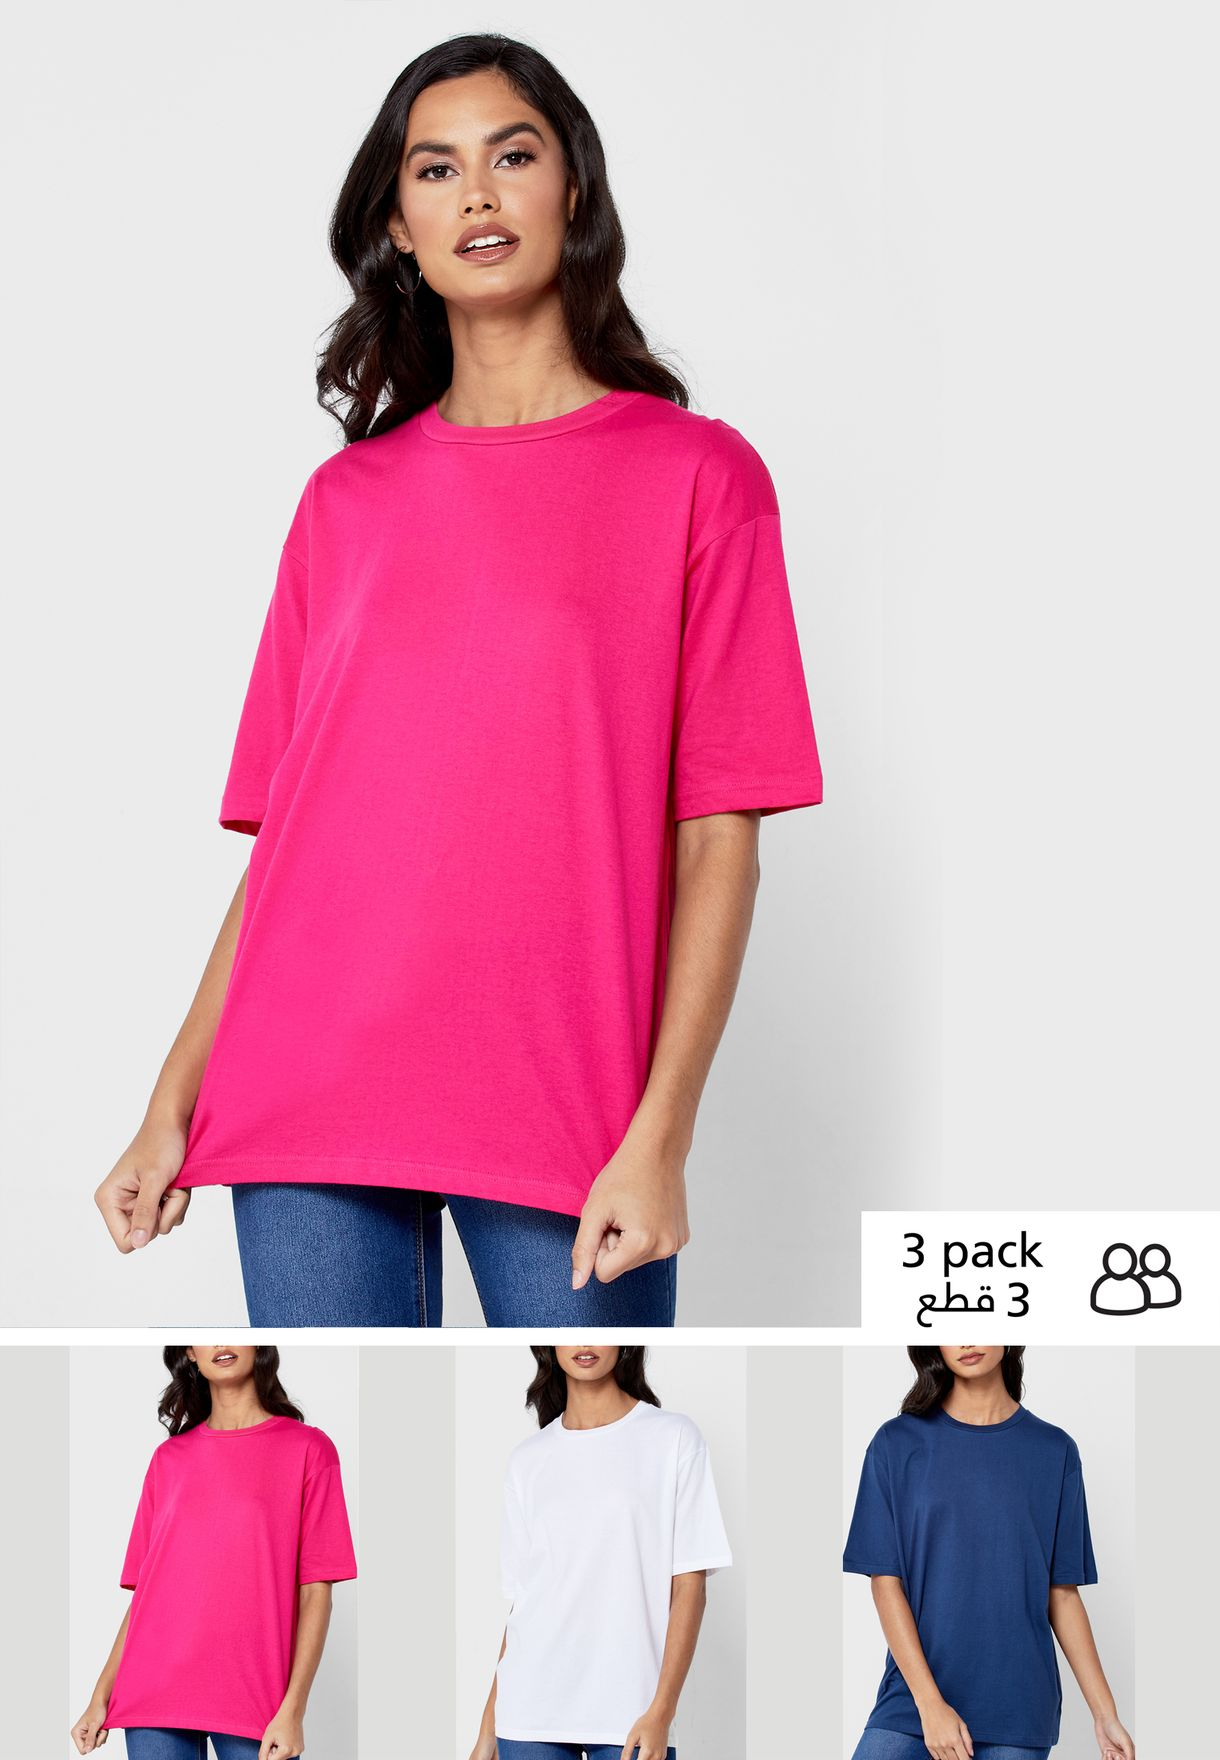 3 Pack Oversized Crew Neck T-Shirt